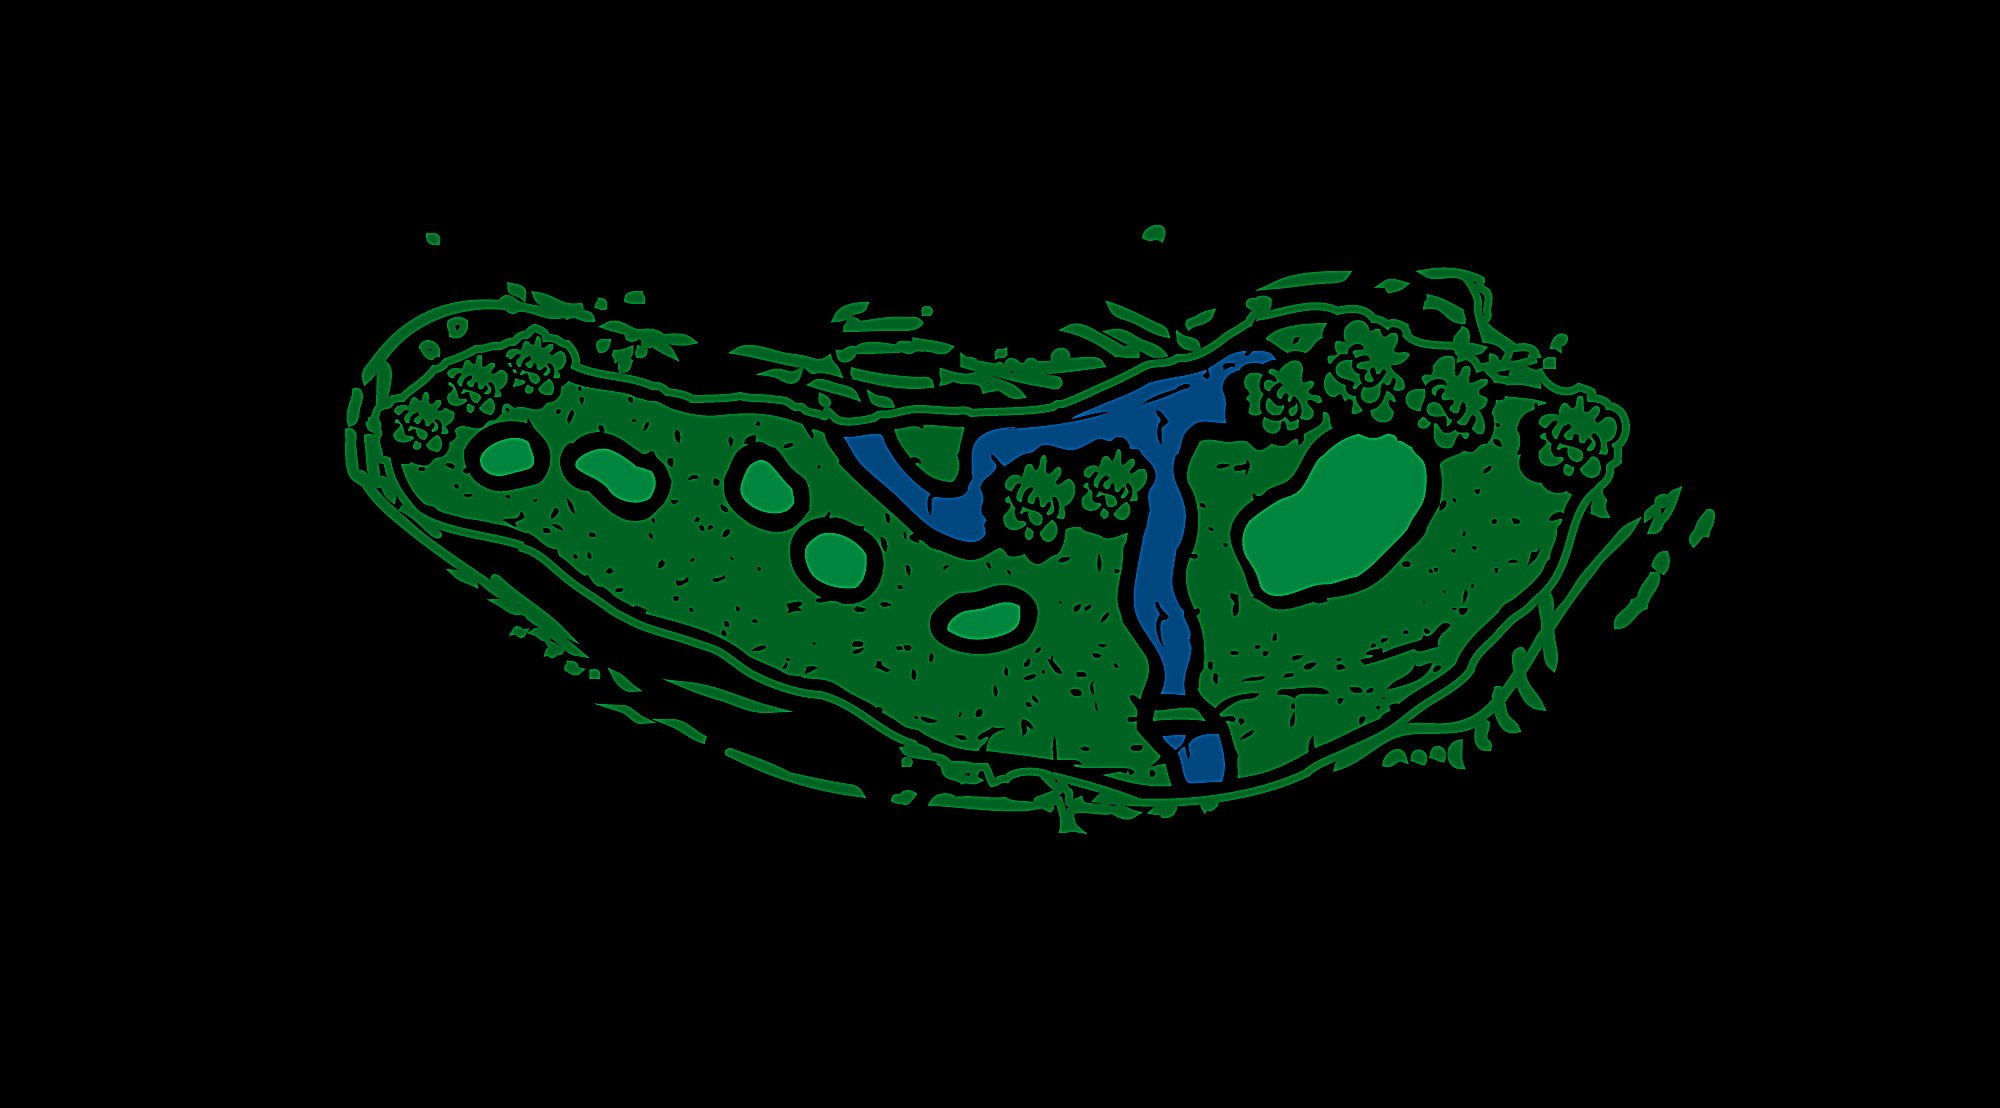 Meadow Valleys Hole 15 Mercy Layout